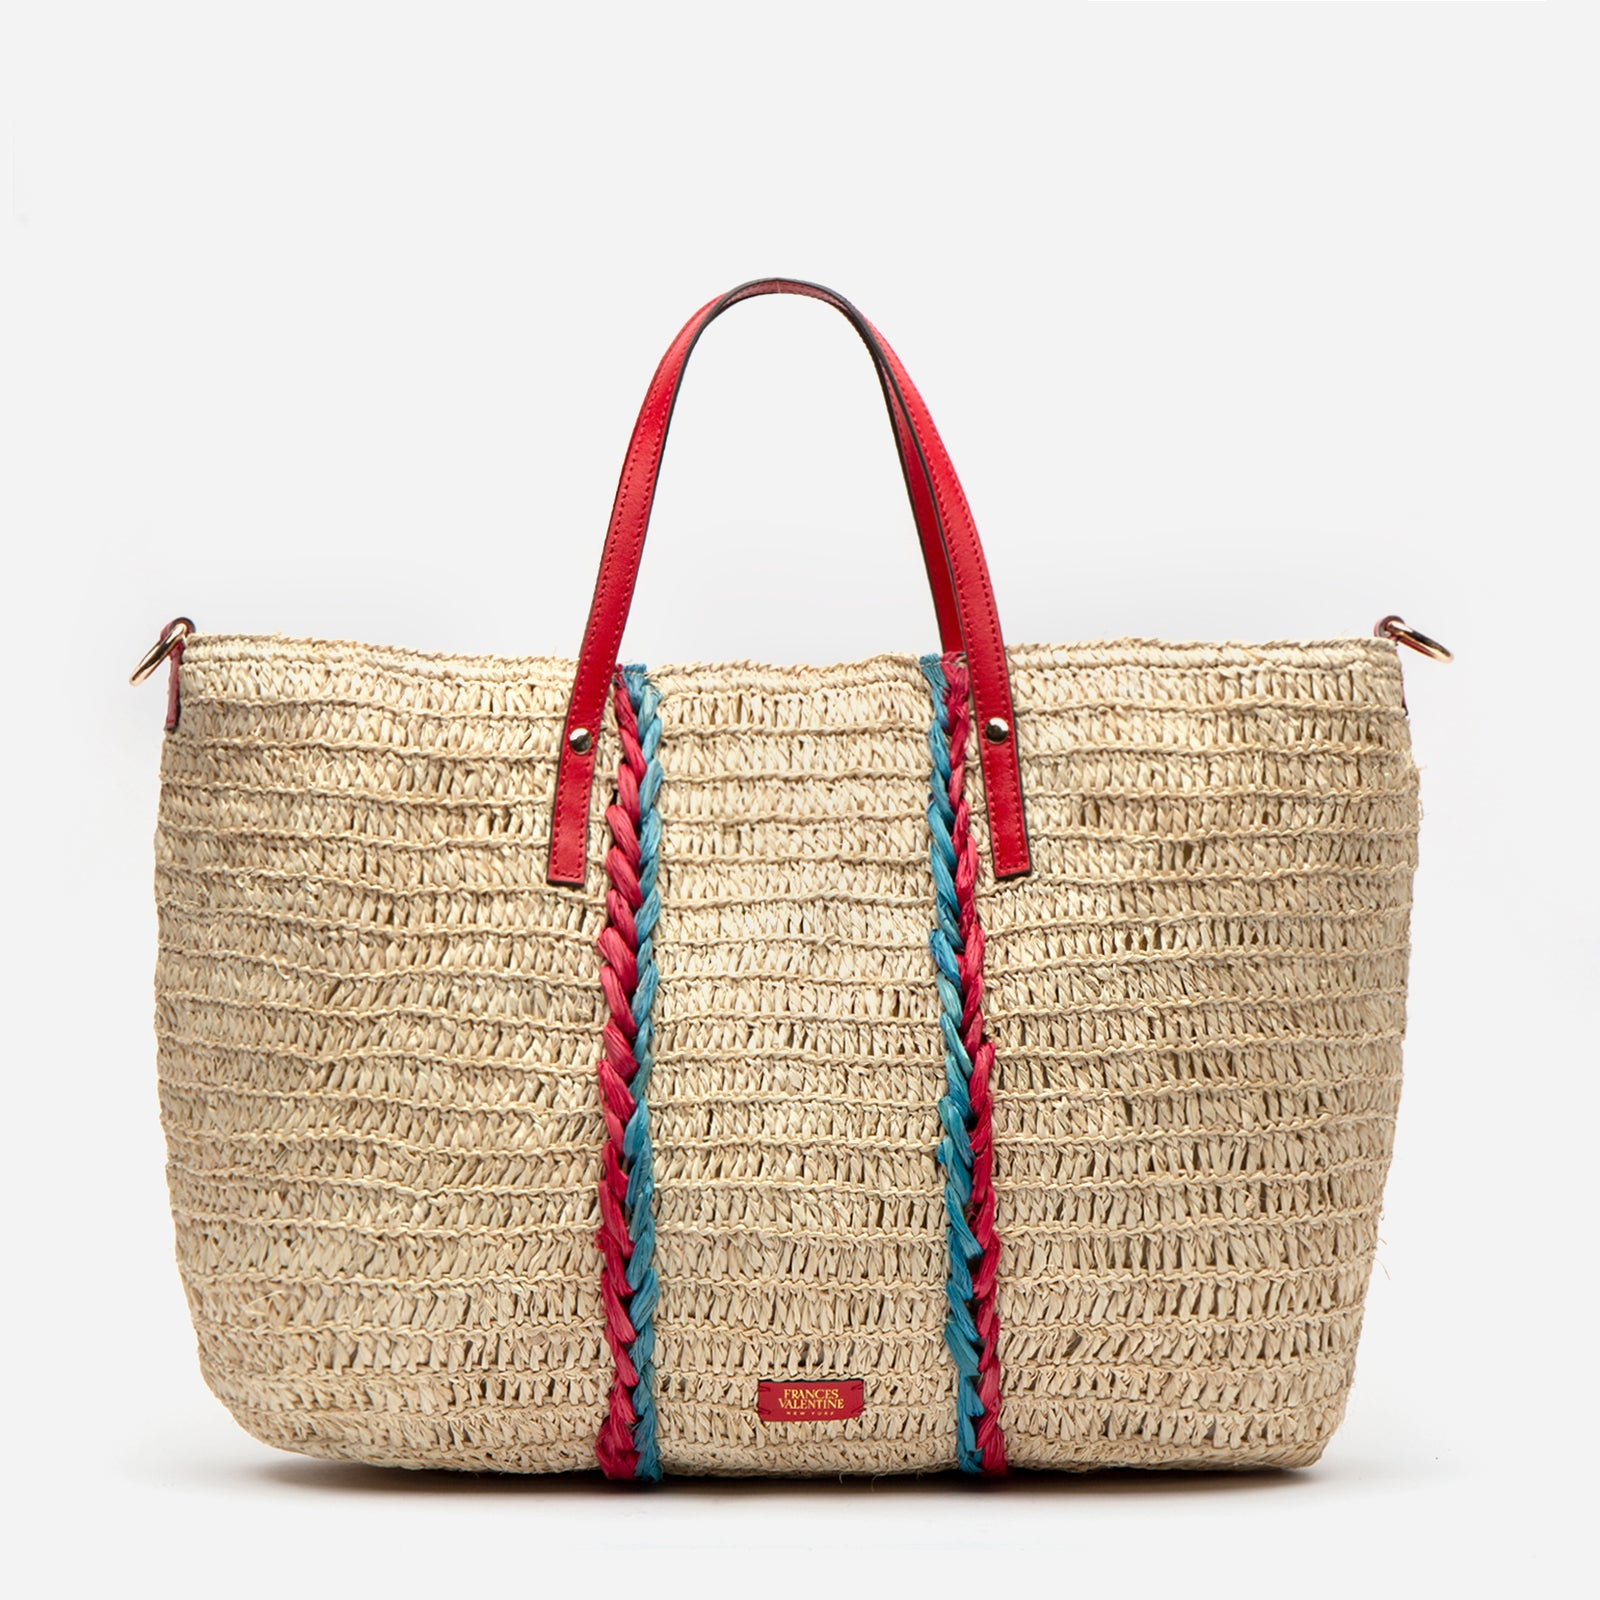 Raffia Carryall Tote Red Blue - Frances Valentine